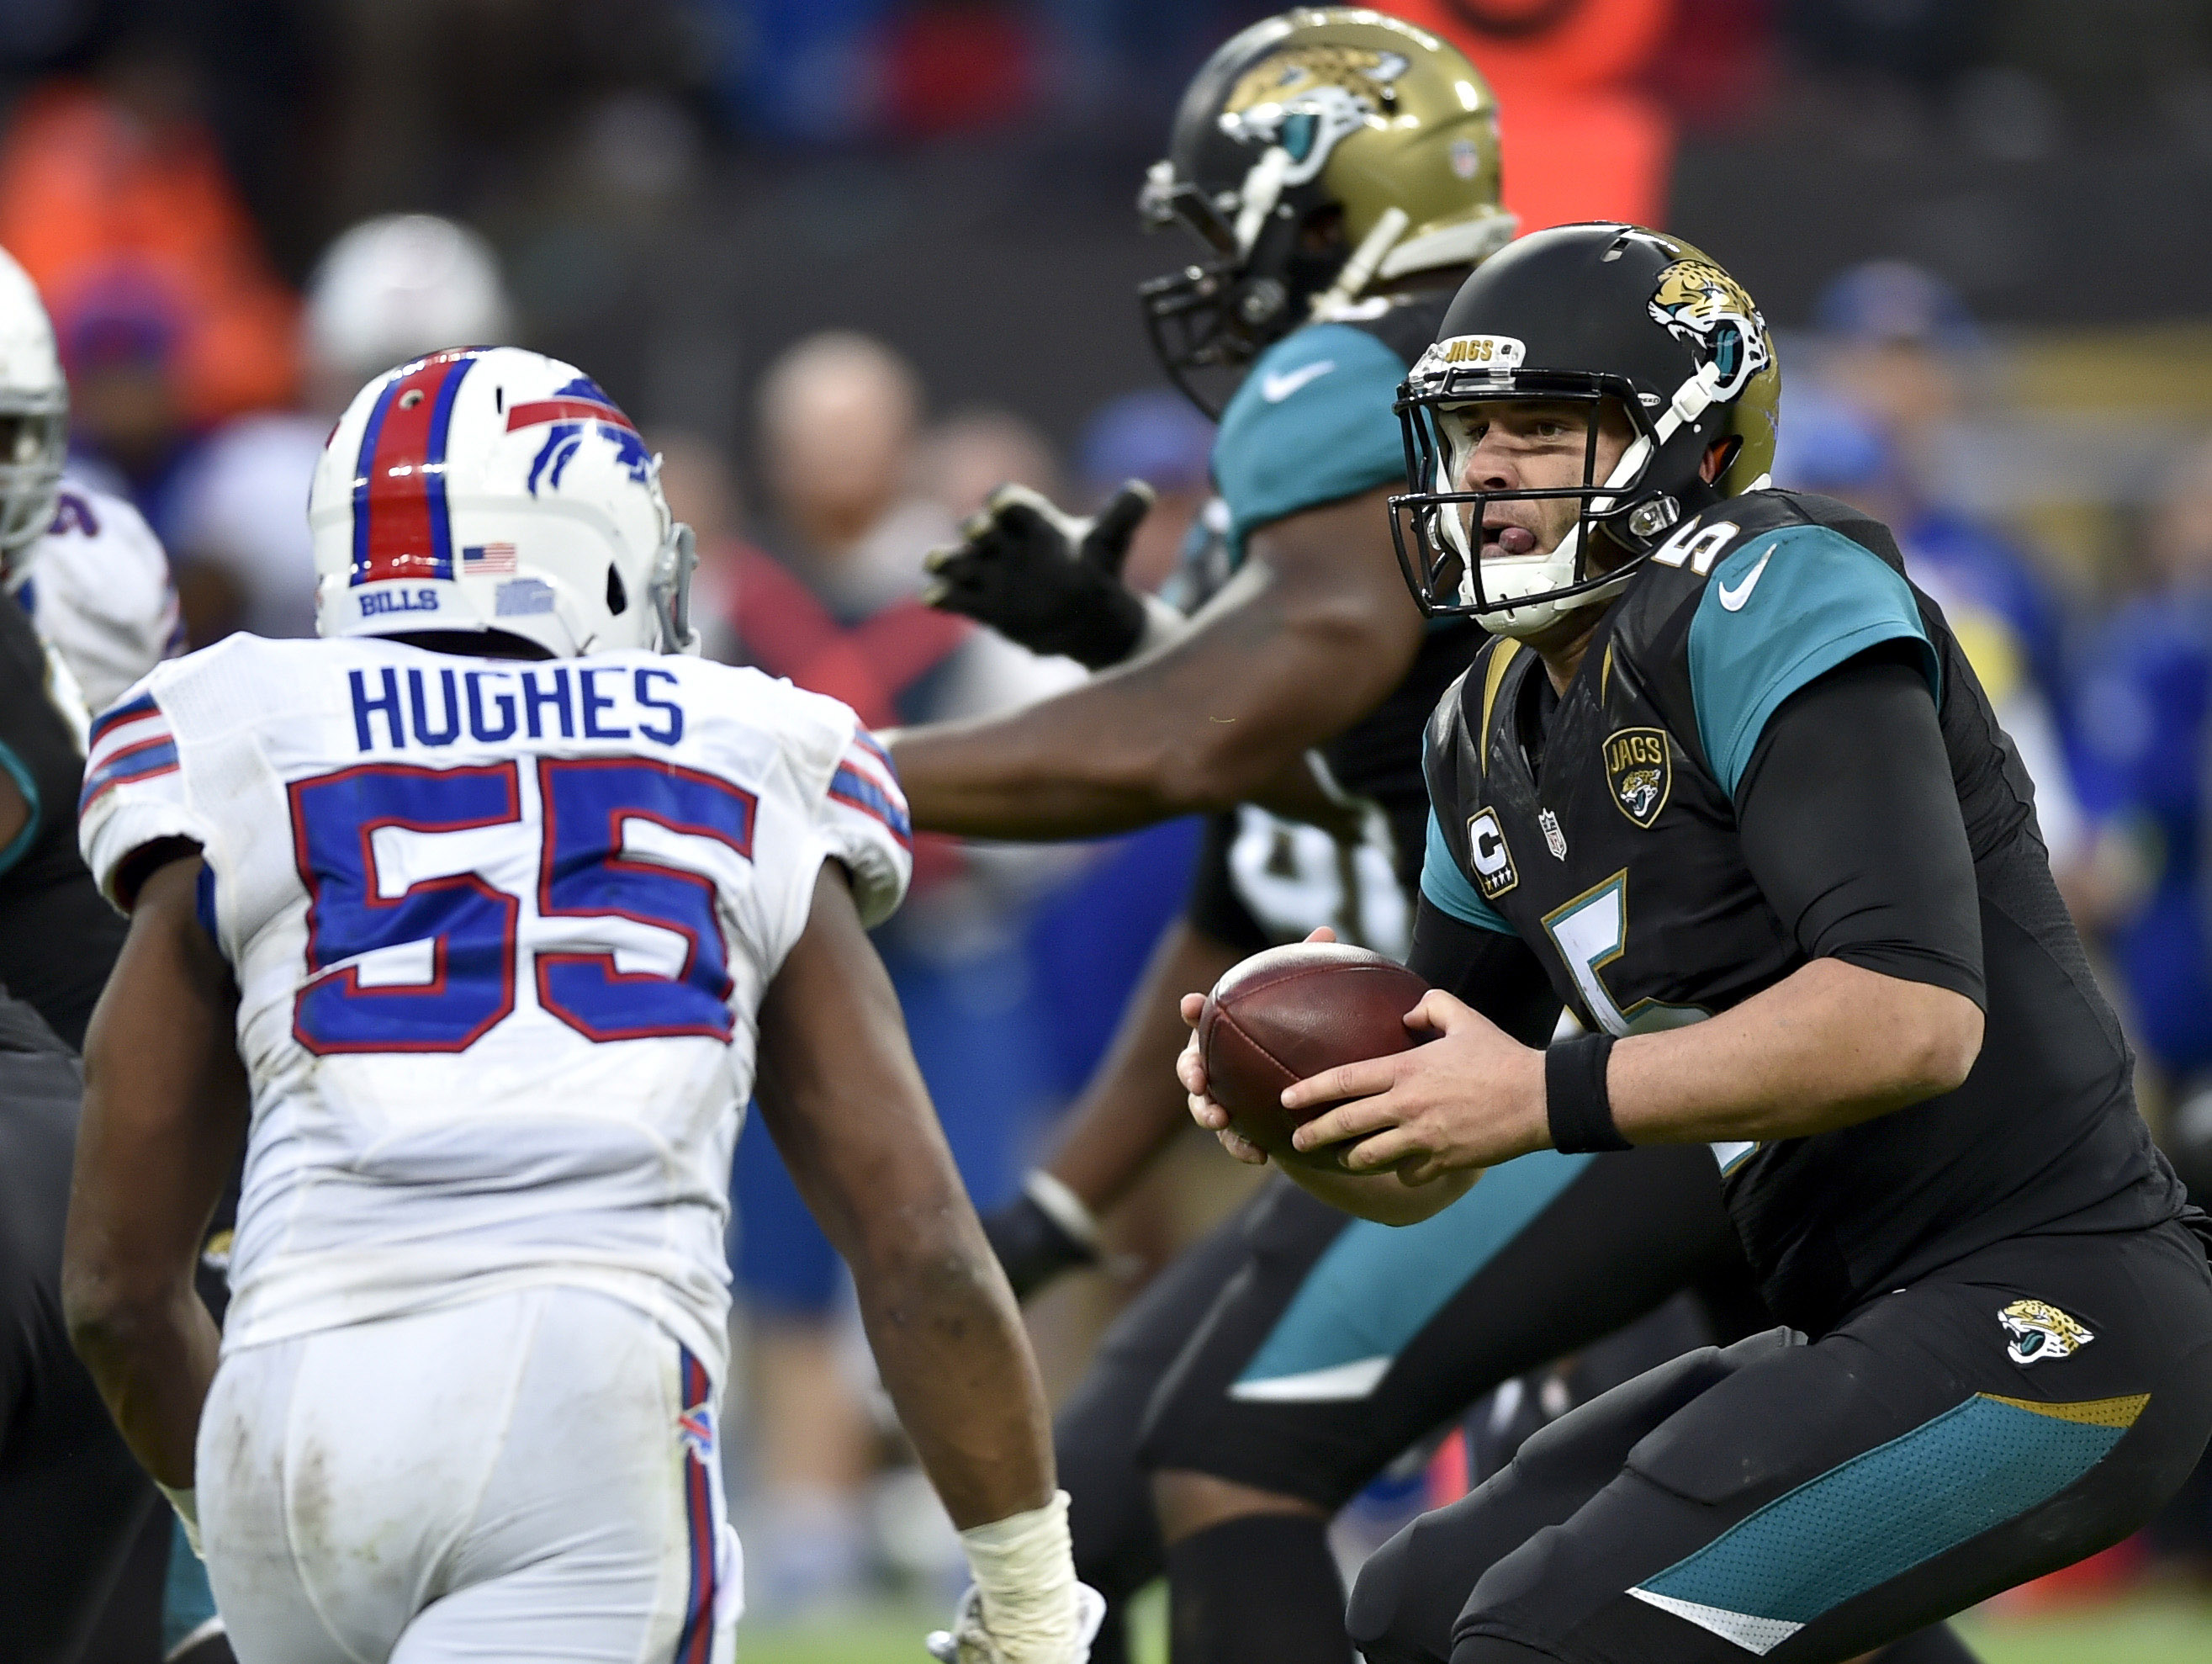 8883169-nfl-international-series-buffalo-bills-at-jacksonville-jaguars